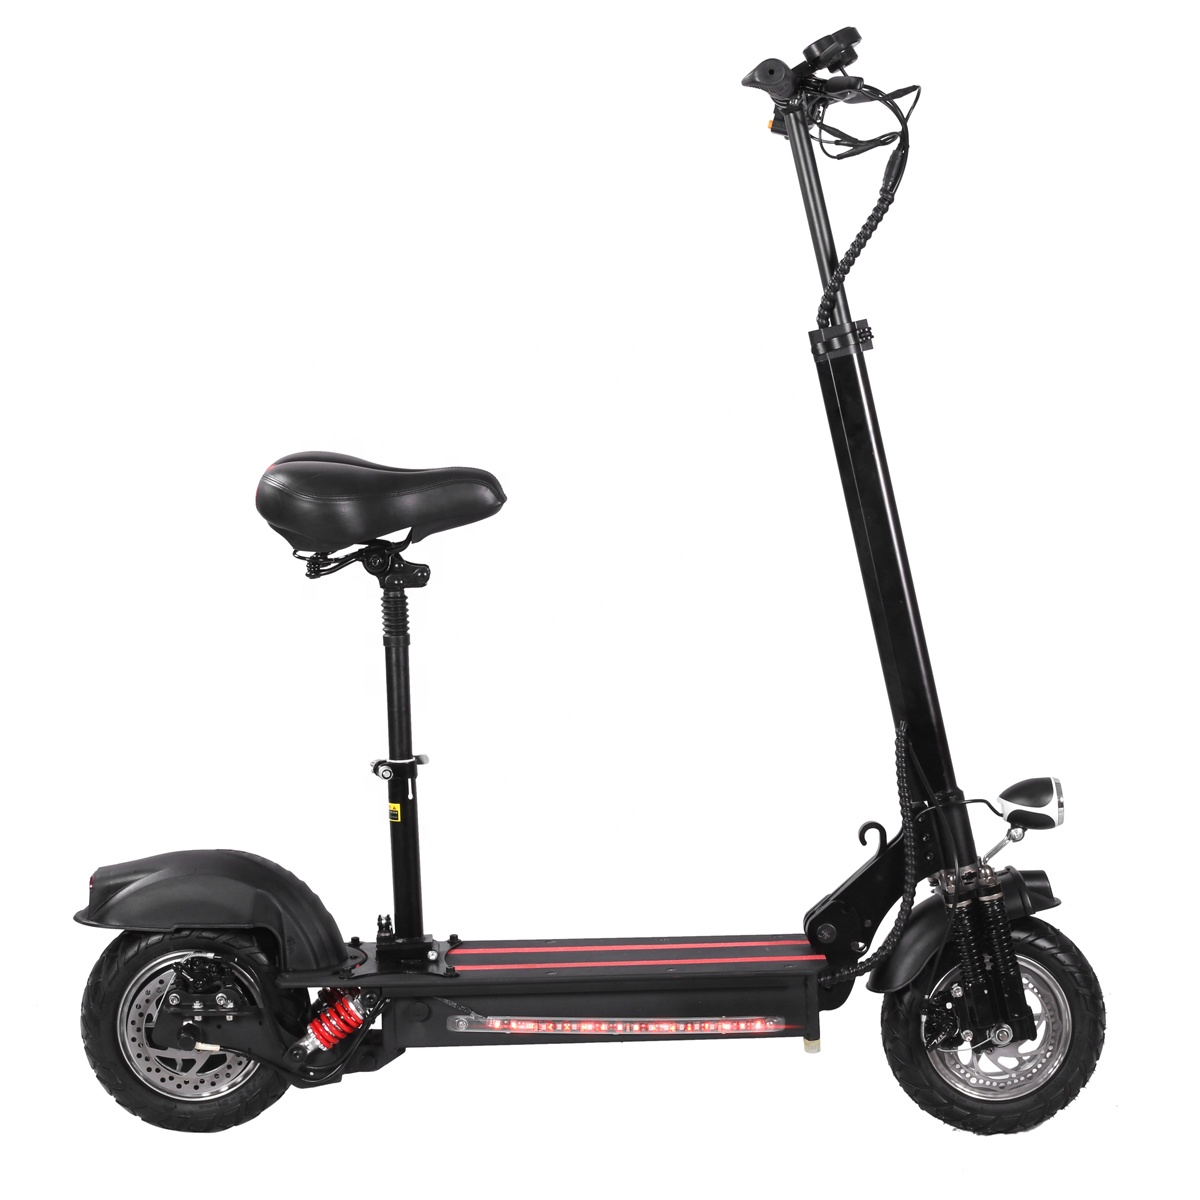 Two Wheels Electric Scooter City Coco 2000W Brushless Dual Motor 21Ah Battery Fat Tire Electric Scooter Electric Adult, White;black or oem